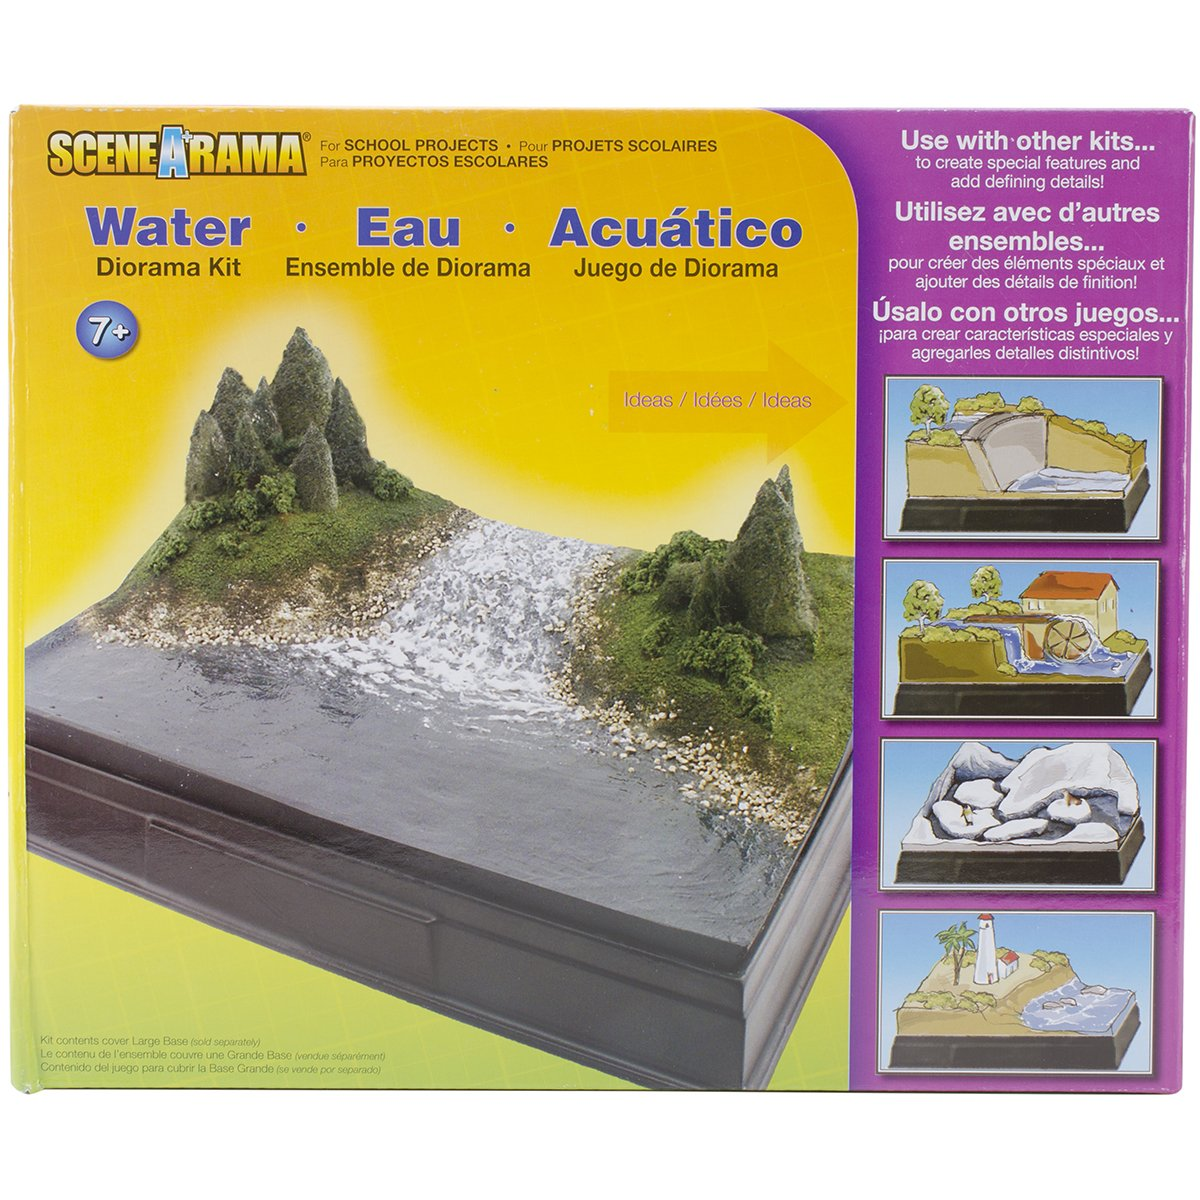 Woodland Scenics SP4113 Scene-A-Rama Water Diorama Kit, Multicolor